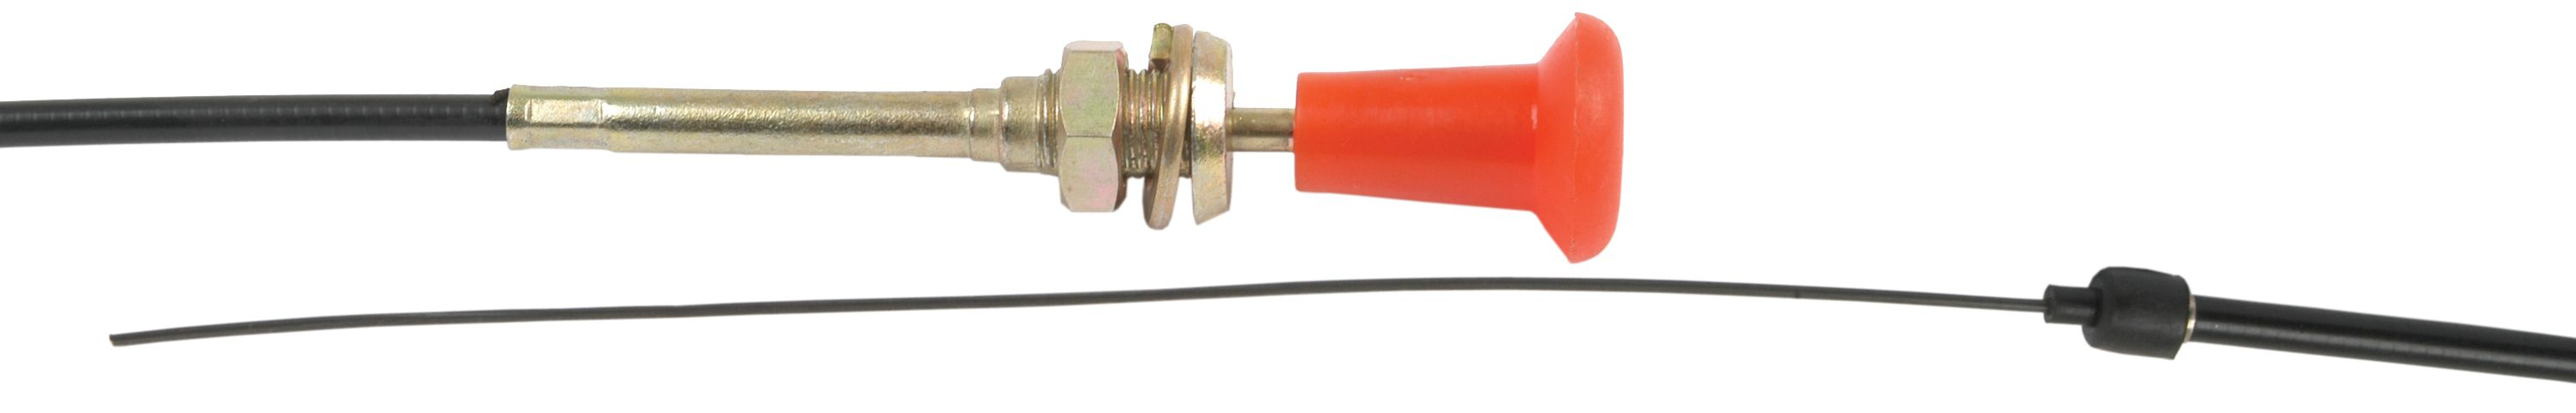 PERKINS CABLE-STOP (2245MM) 14551